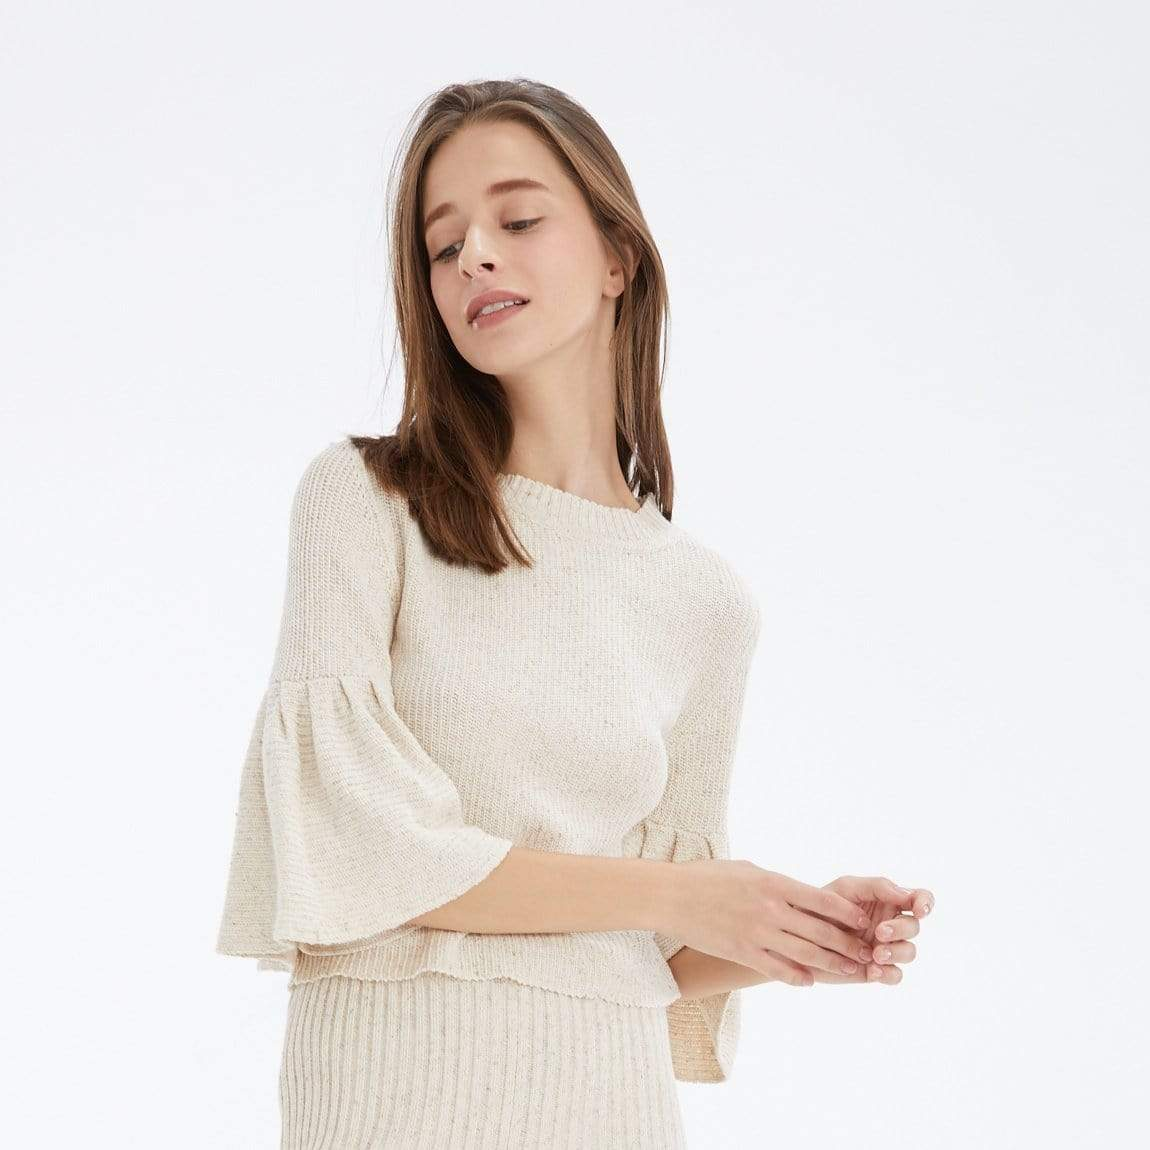 TAKTAI Blouse Ruffle Short Sleeve Knitted Blouse